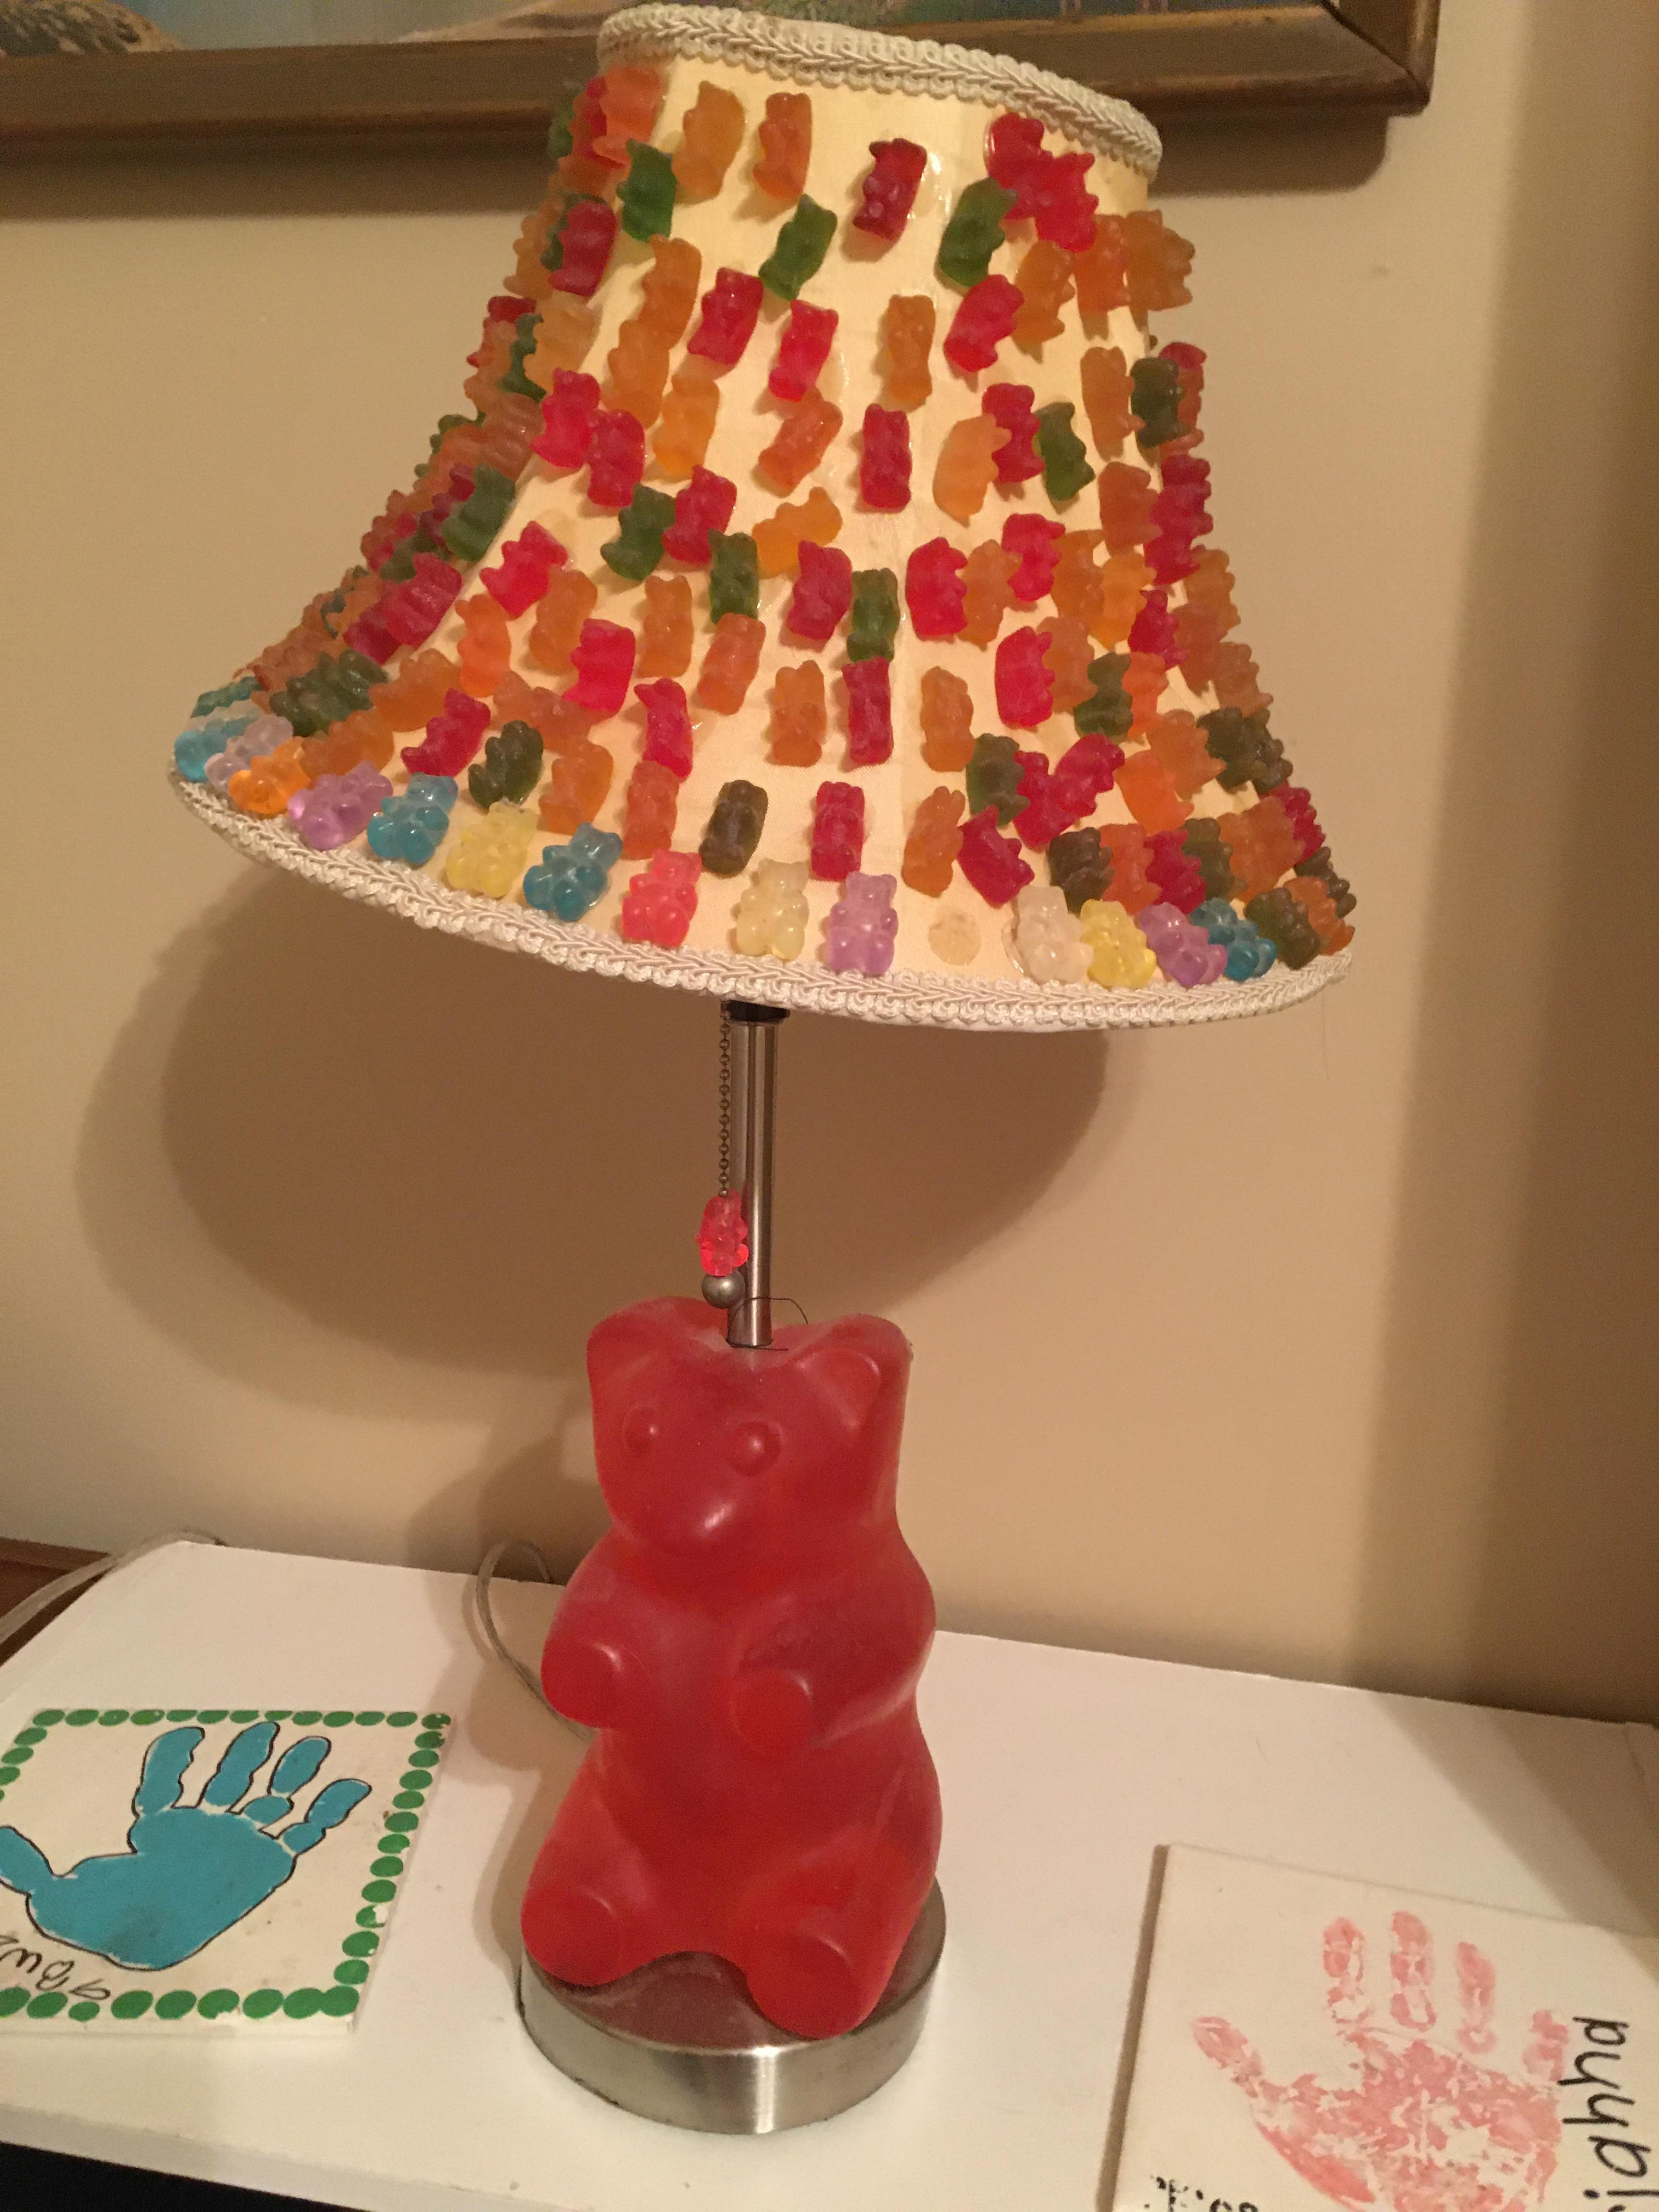 If Anyone Ever Wondered What Happened To That Darn Gummy Bear Lamp From The Icarly Set It S At My Mother S House My Sister Won A Nickelodeon Contest Back In The Day